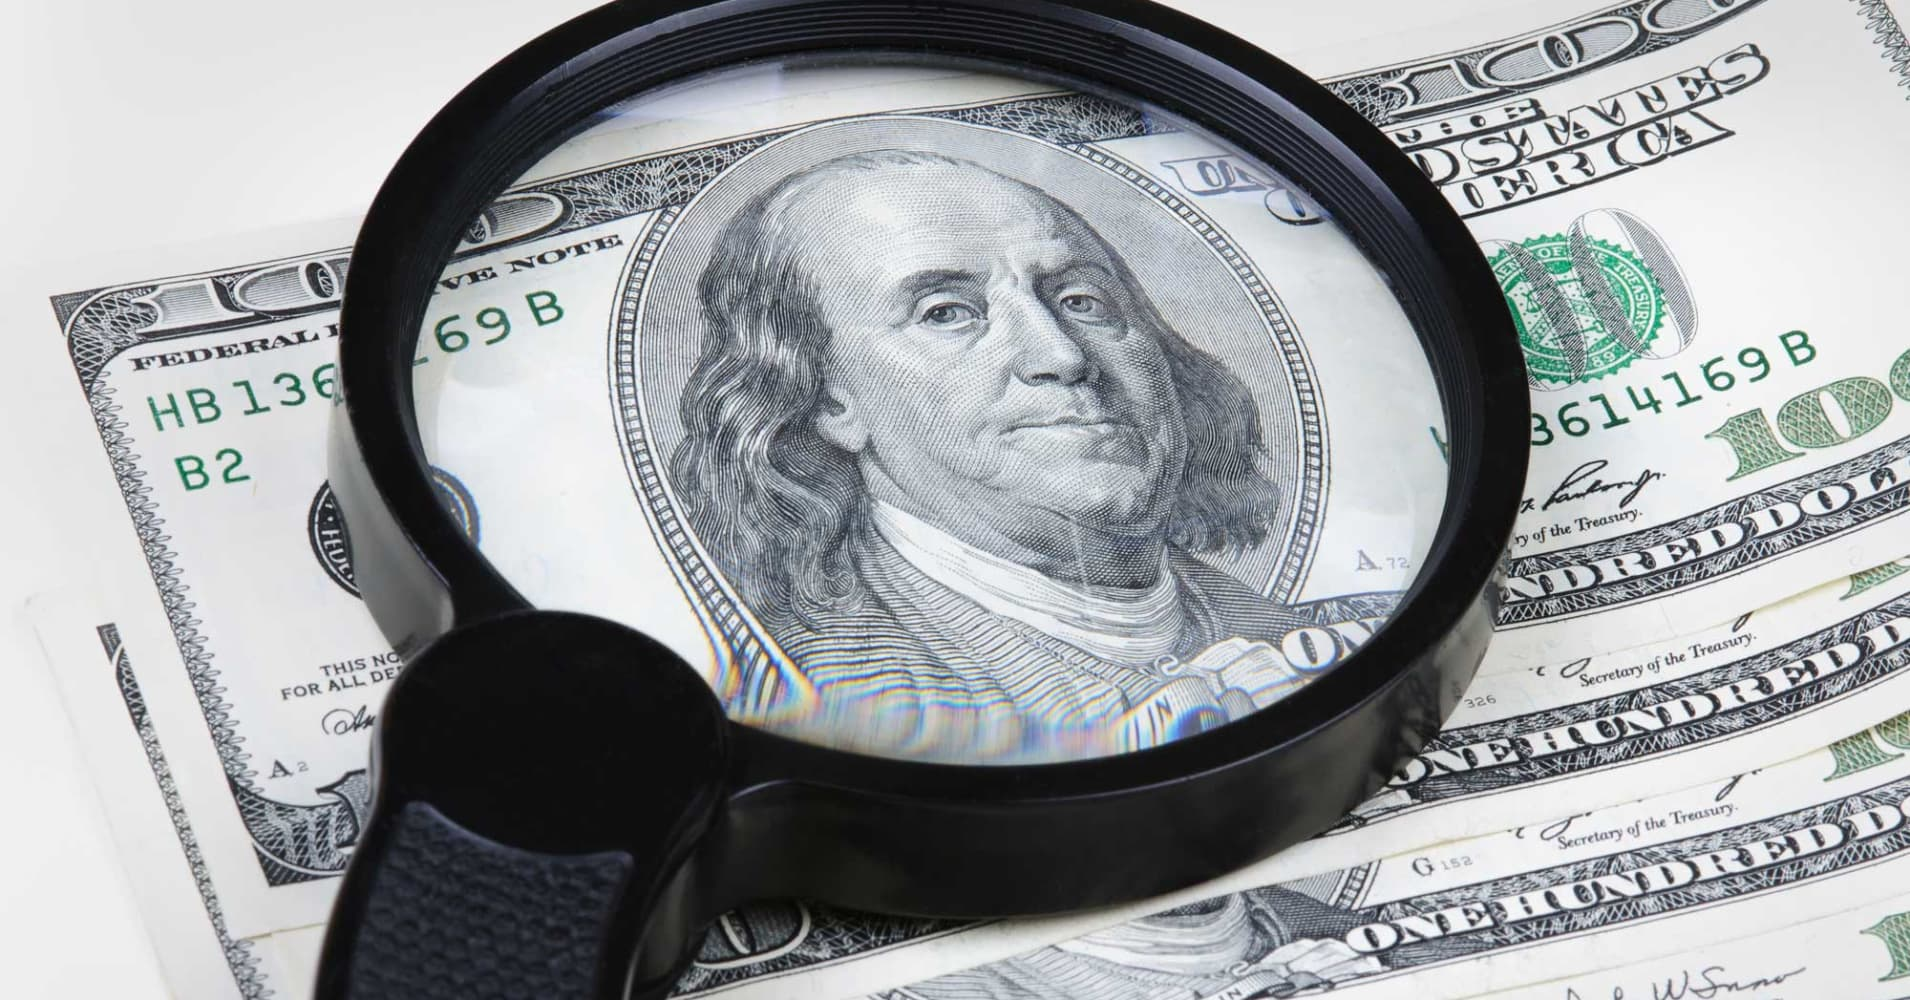 How can you search for unclaimed cash held by the federal government?